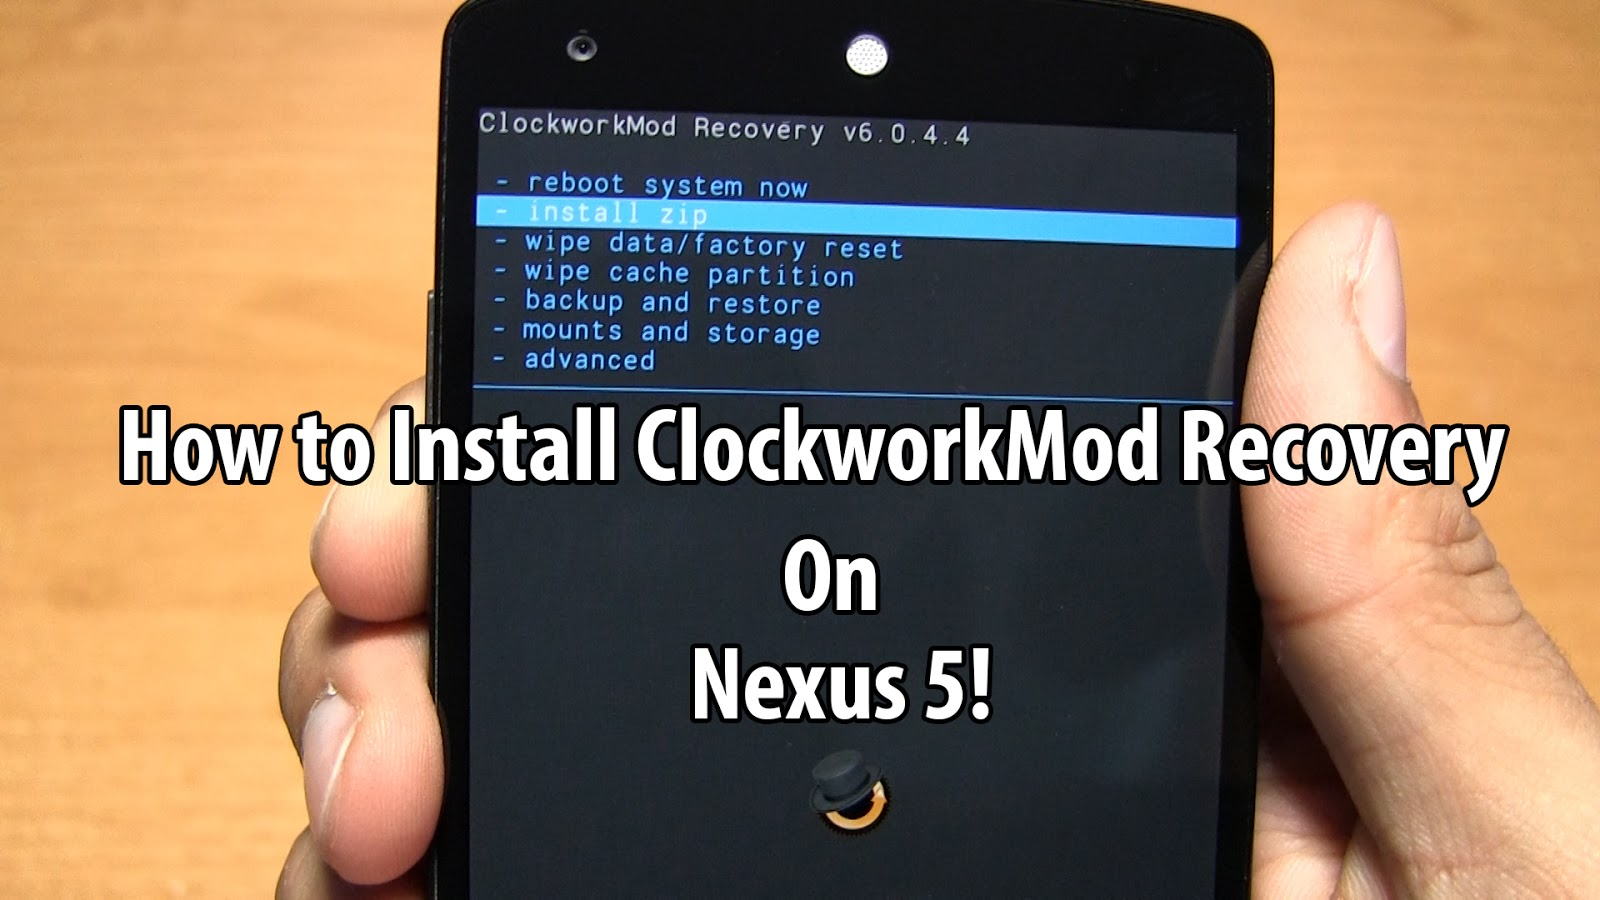 How To Install Clockworkmod Recovery On Rooted Nexus 5! ~ Androidrootz   Source For Android Rooting, Roms, Tricks And More!